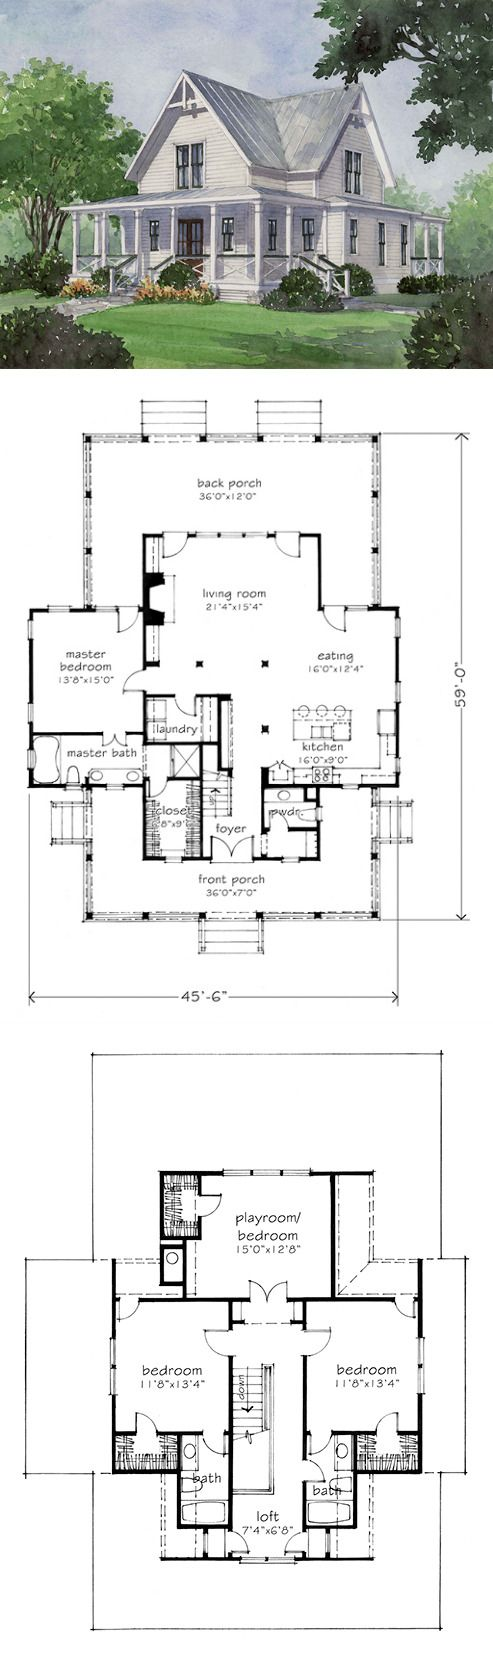 Love This Plan Kids Rooms Upstairs Love The Openness Downstairs Finished Basement Would Be Awesome Farmhouse Floor Plans House Plans Farmhouse Cottage Plan